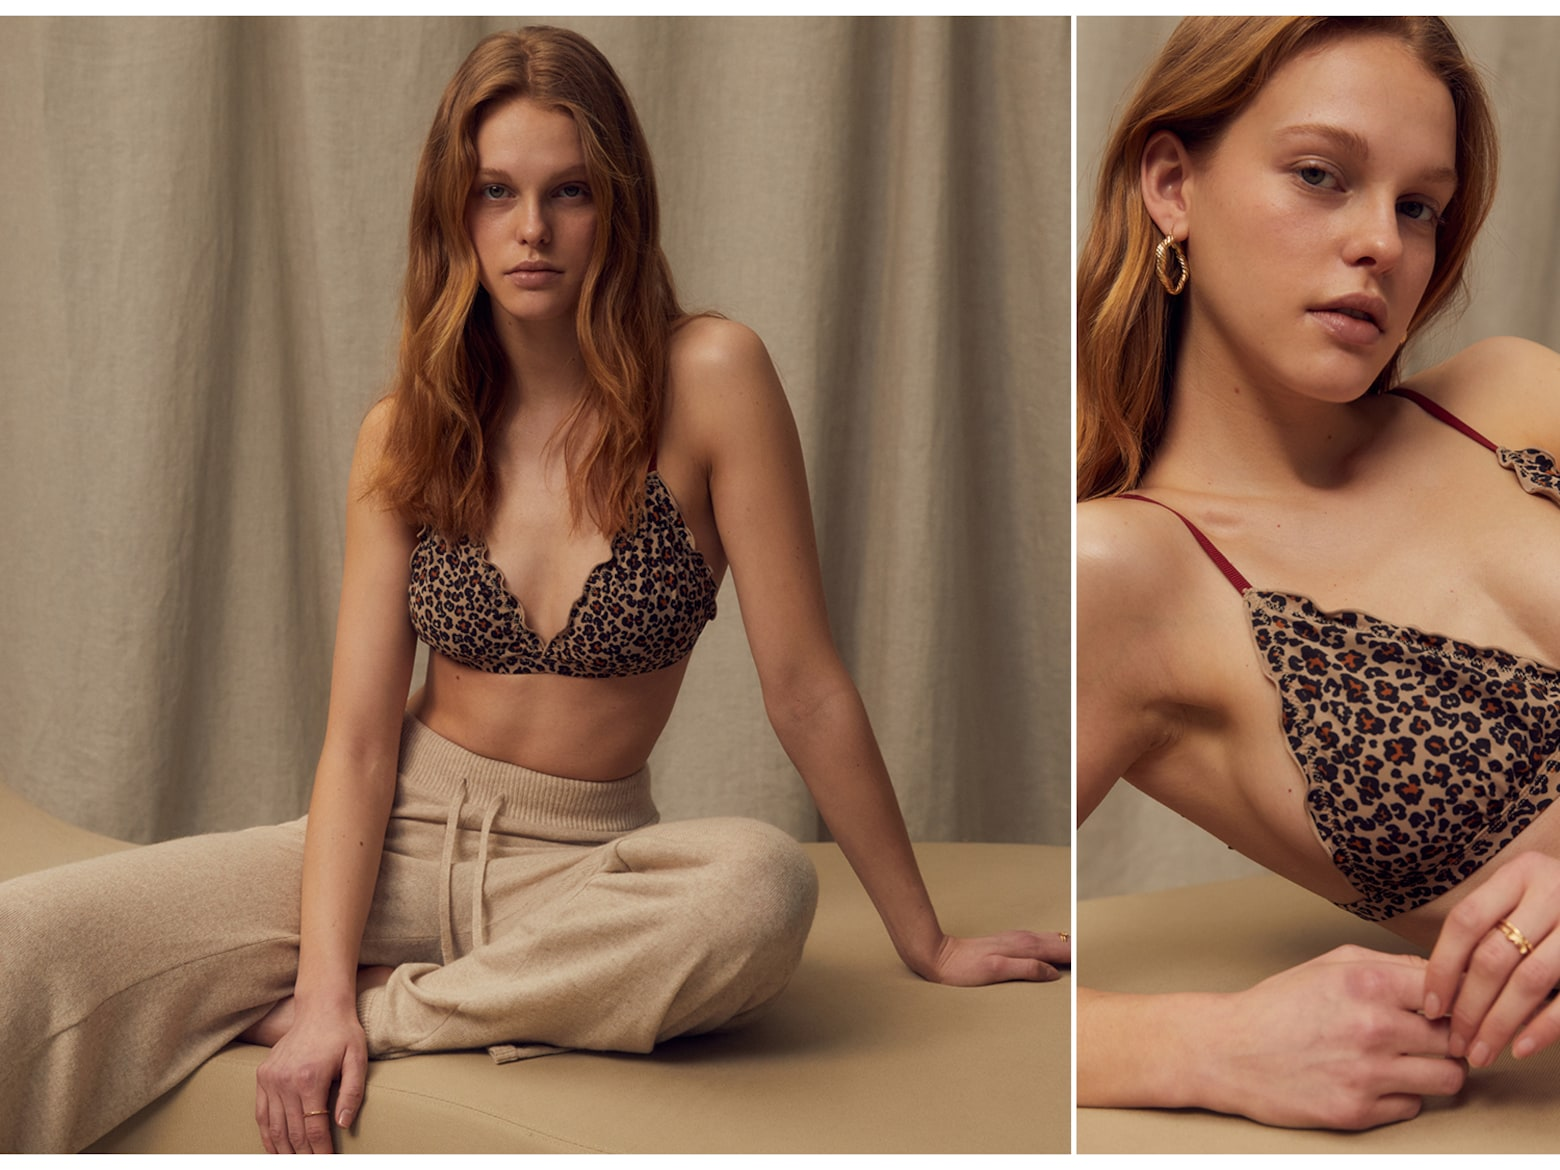 Esther A. - Animal Print Lingerie Outfit